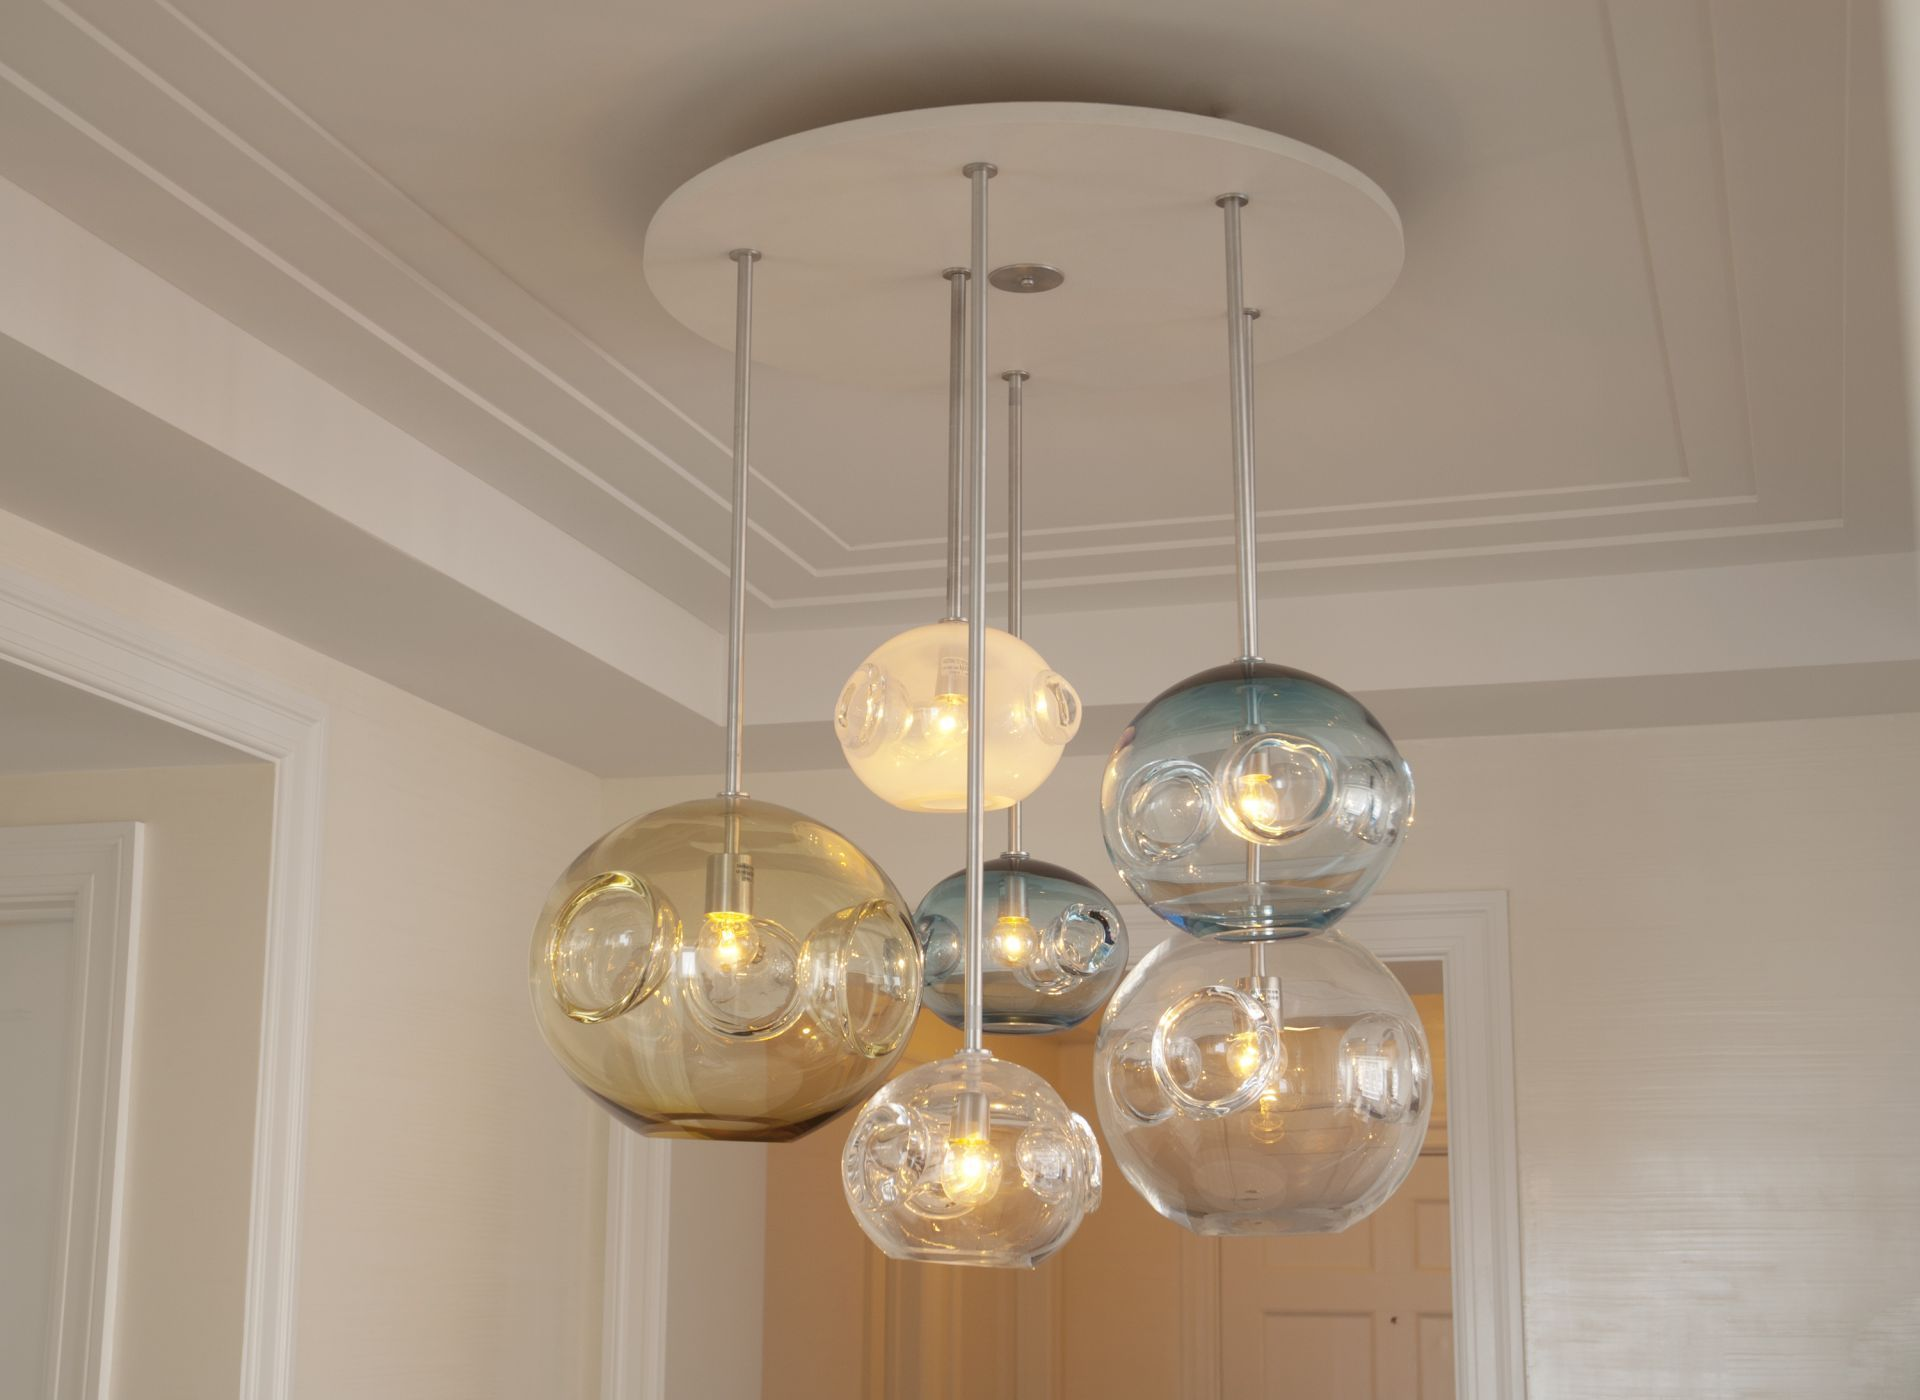 Entry chandelier aqua chandelier manhattan apartment entry entry chandelier aqua chandelier manhattan apartment entry chandelier aloadofball Choice Image